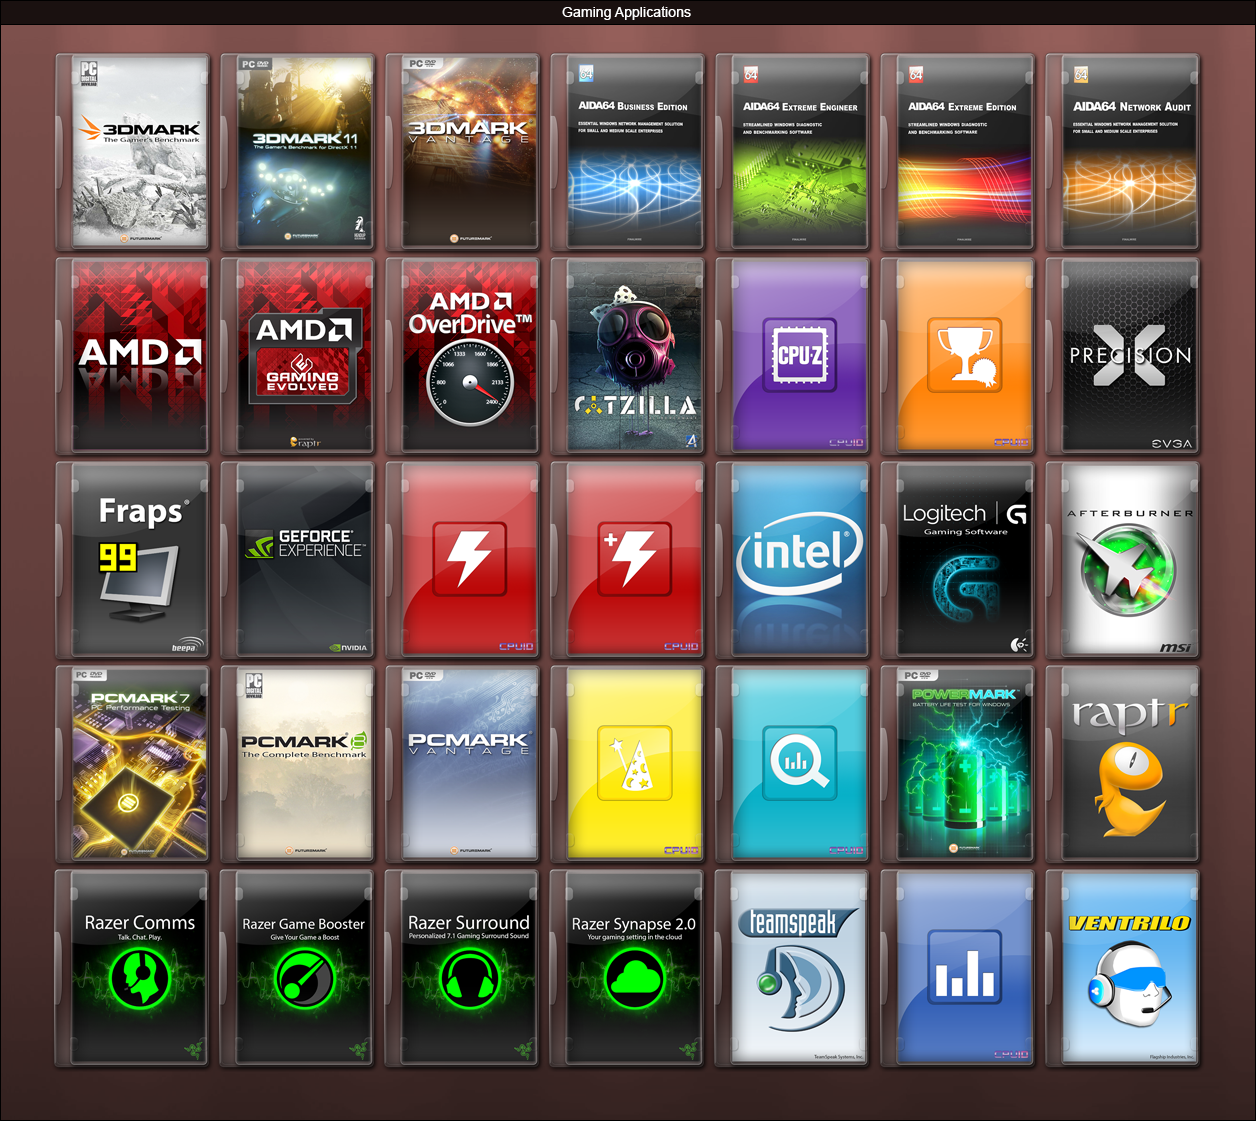 Evga Wallpaper: Gaming Applications By GameBoxIcons On DeviantArt